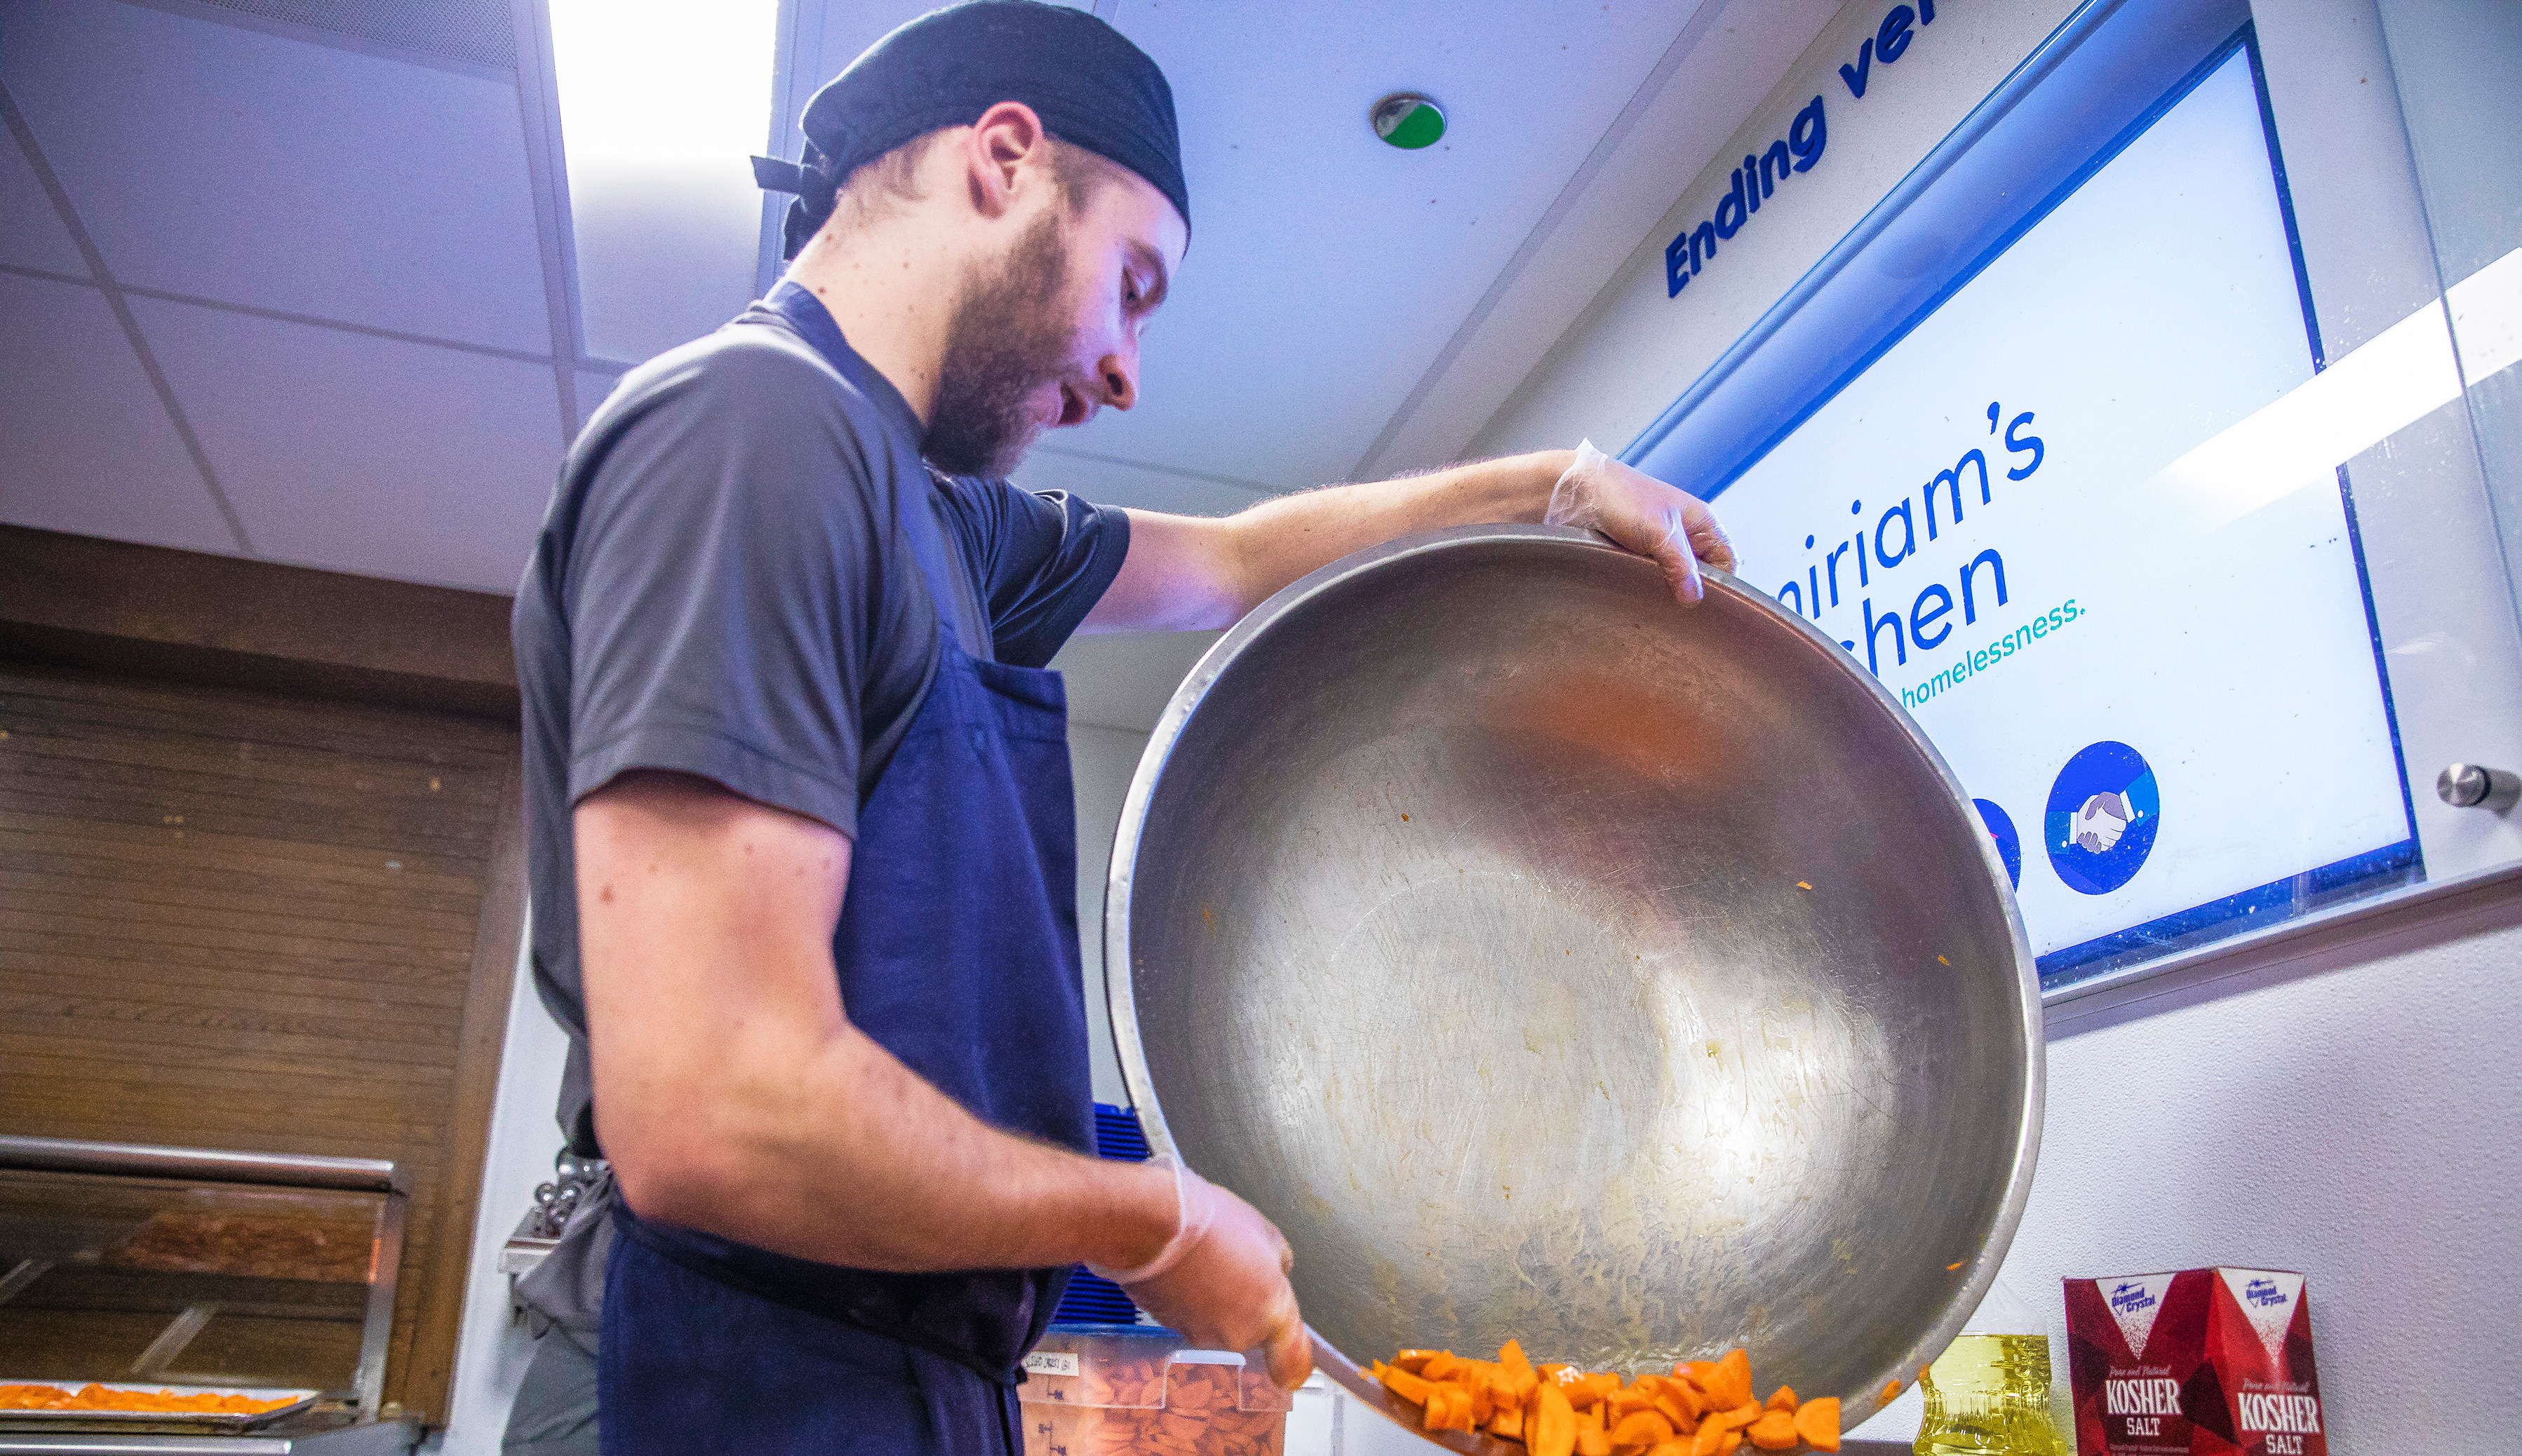 A kitchen worker dumping a large metal bowl of chopped carrots